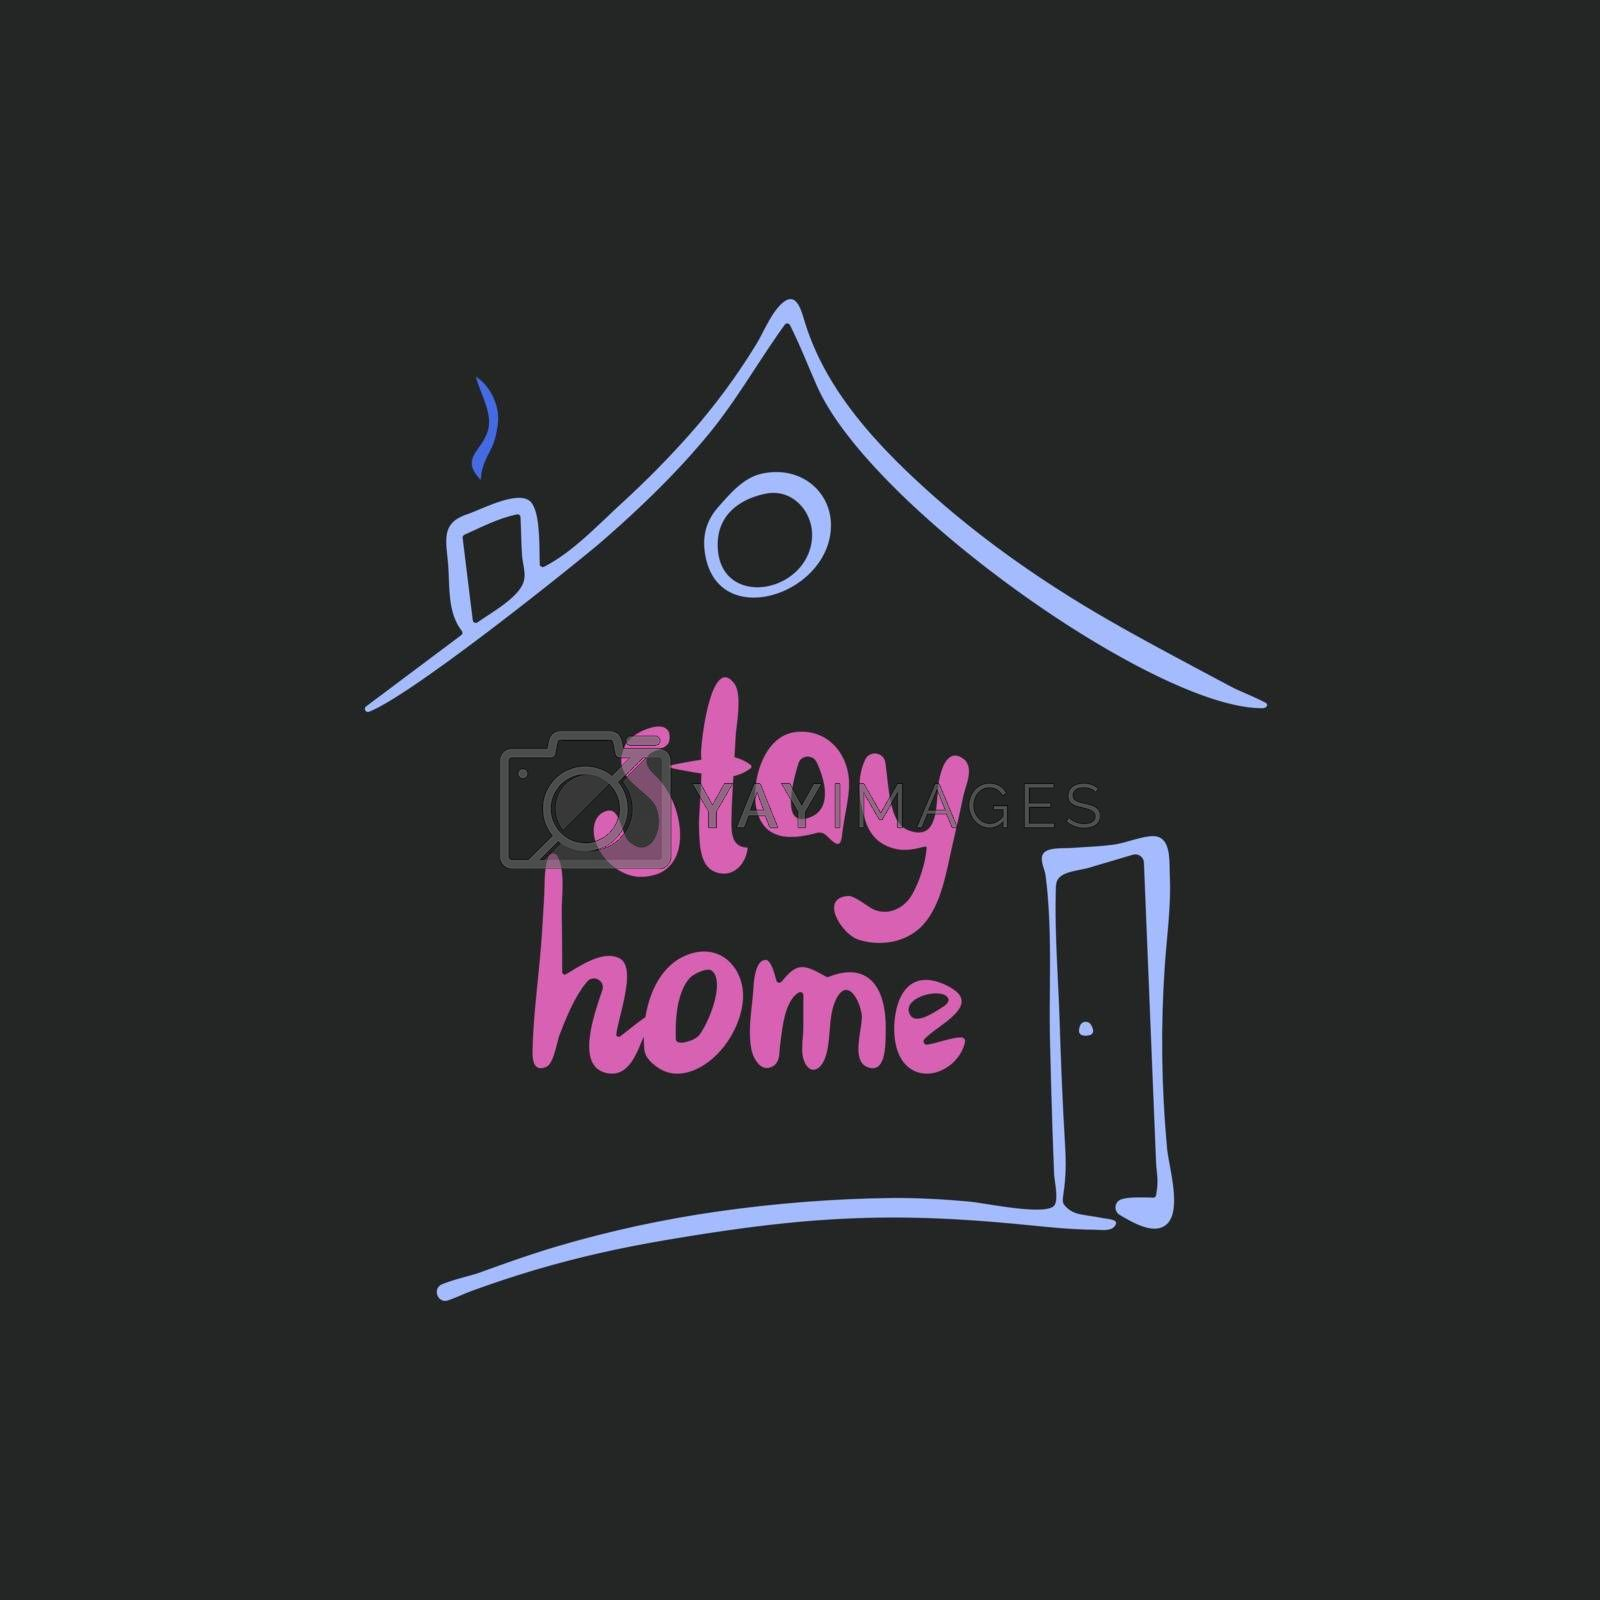 Stay home. Cute hand drawn doodle quote inside a house shape. Stock illustration.